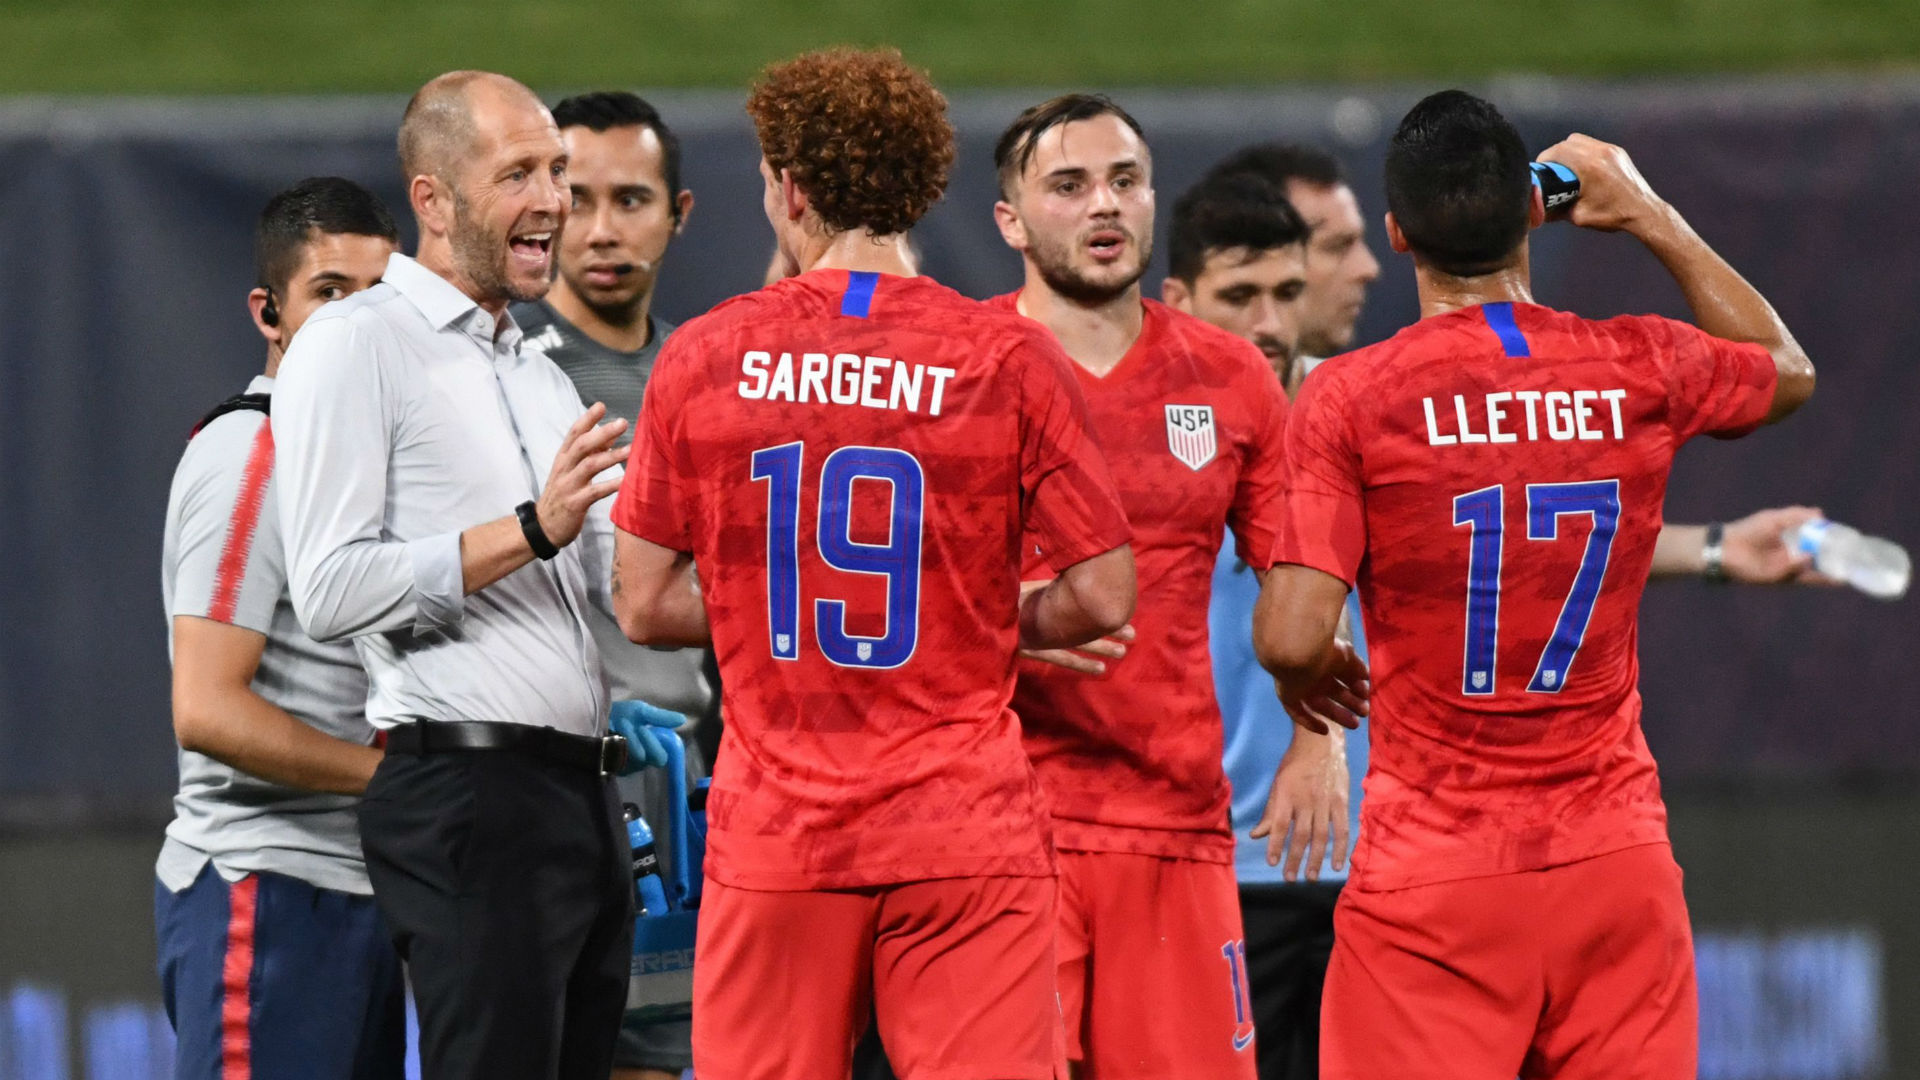 USMNT News: Progress remains hard to come by for Gregg Berhalter's USA ...